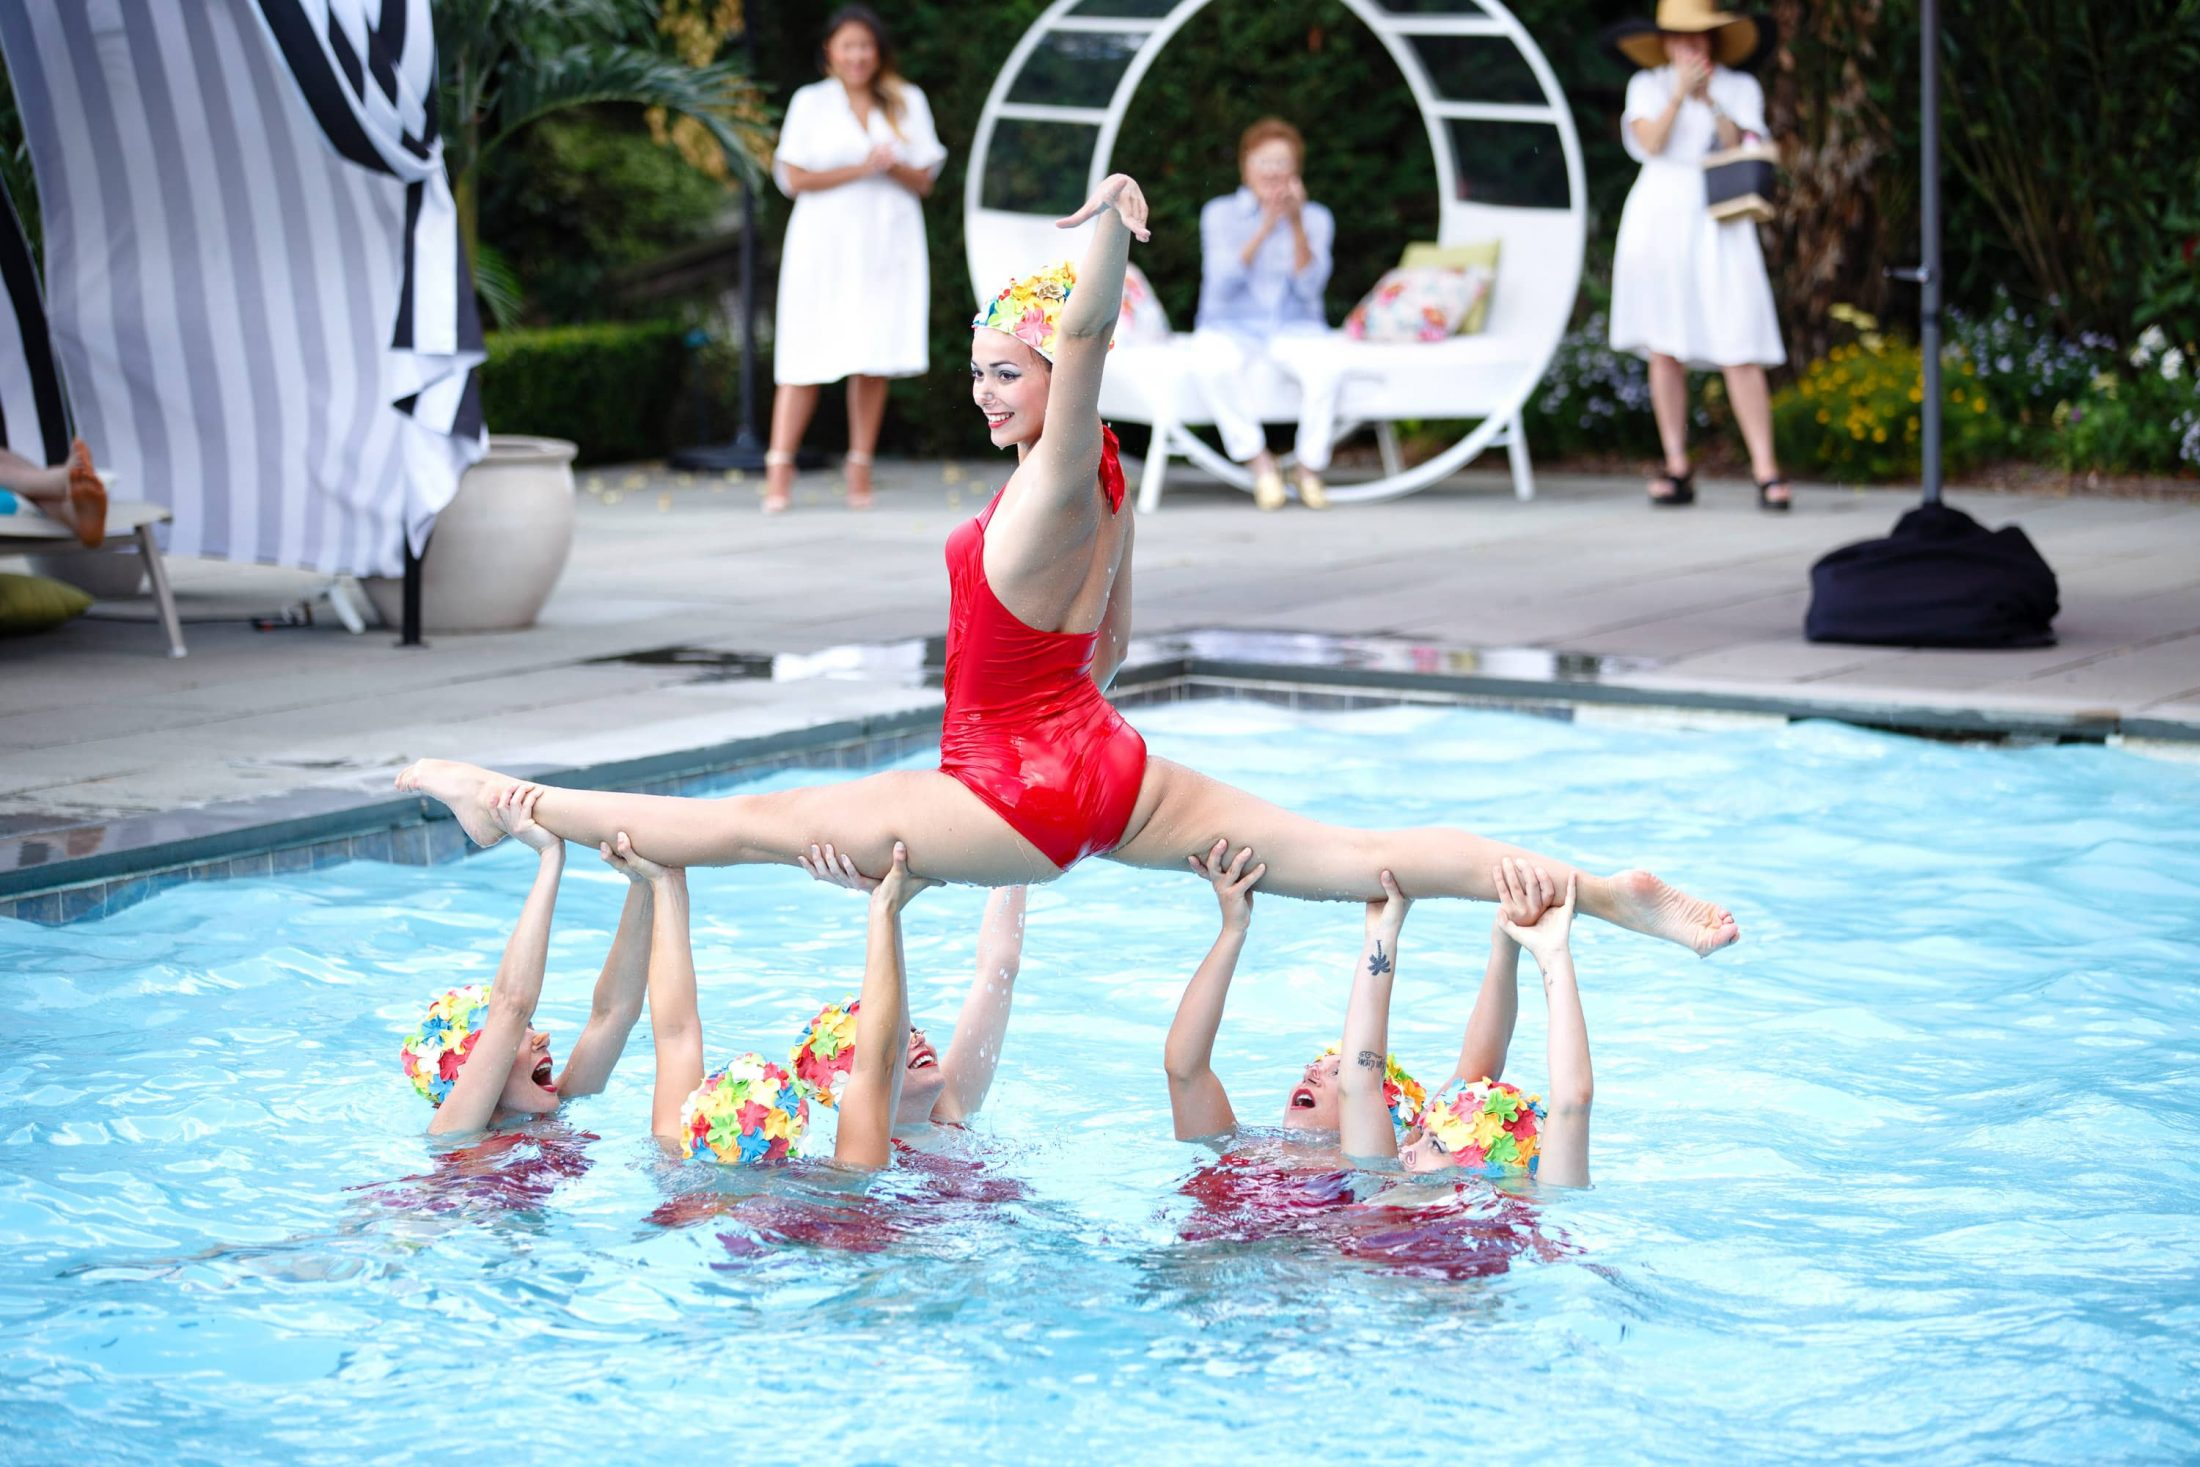 Synchronized swimmer doing a split in red suit and colorful cap at this South Beach-inspired first birthday pool party in the Hamptons | Photo by Cava Photo